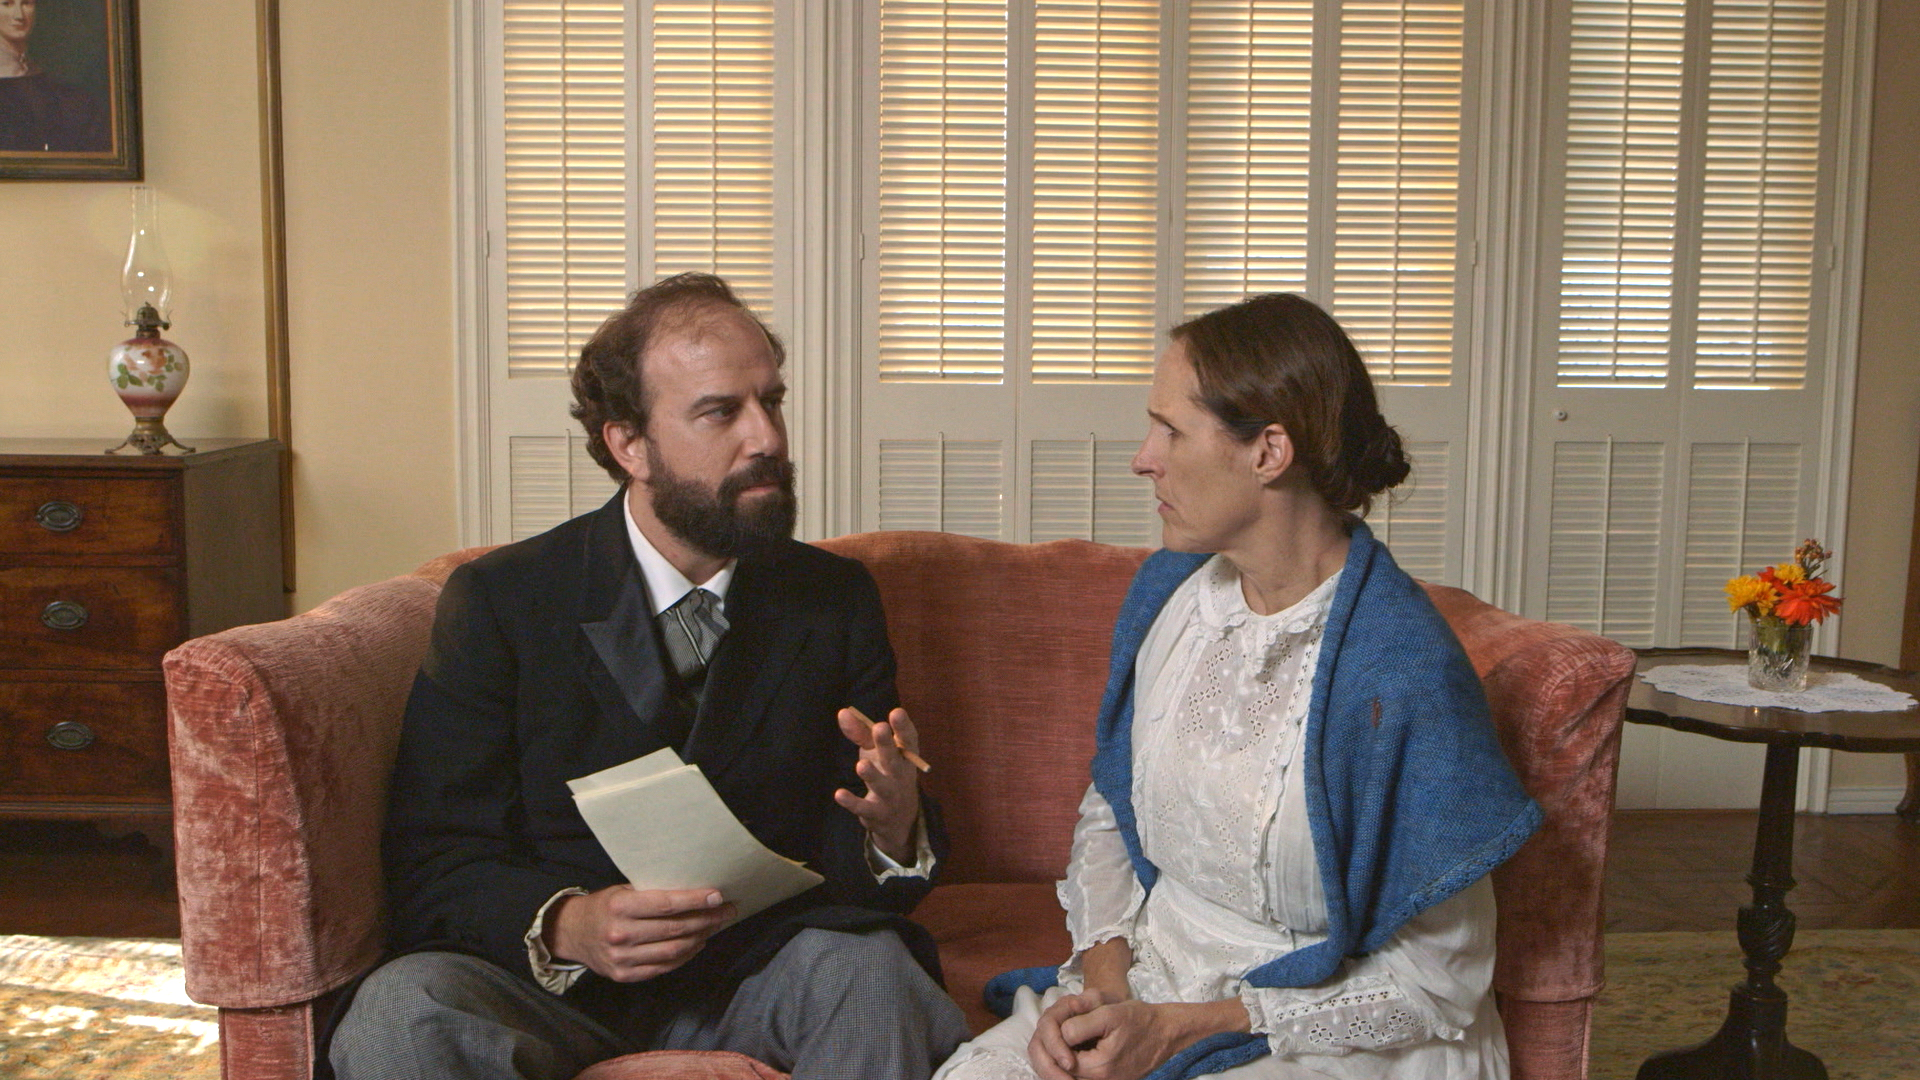 Higginson (Brett Gelman) takes a knife to Emily's poems in 'Wild Nights with Emily.'